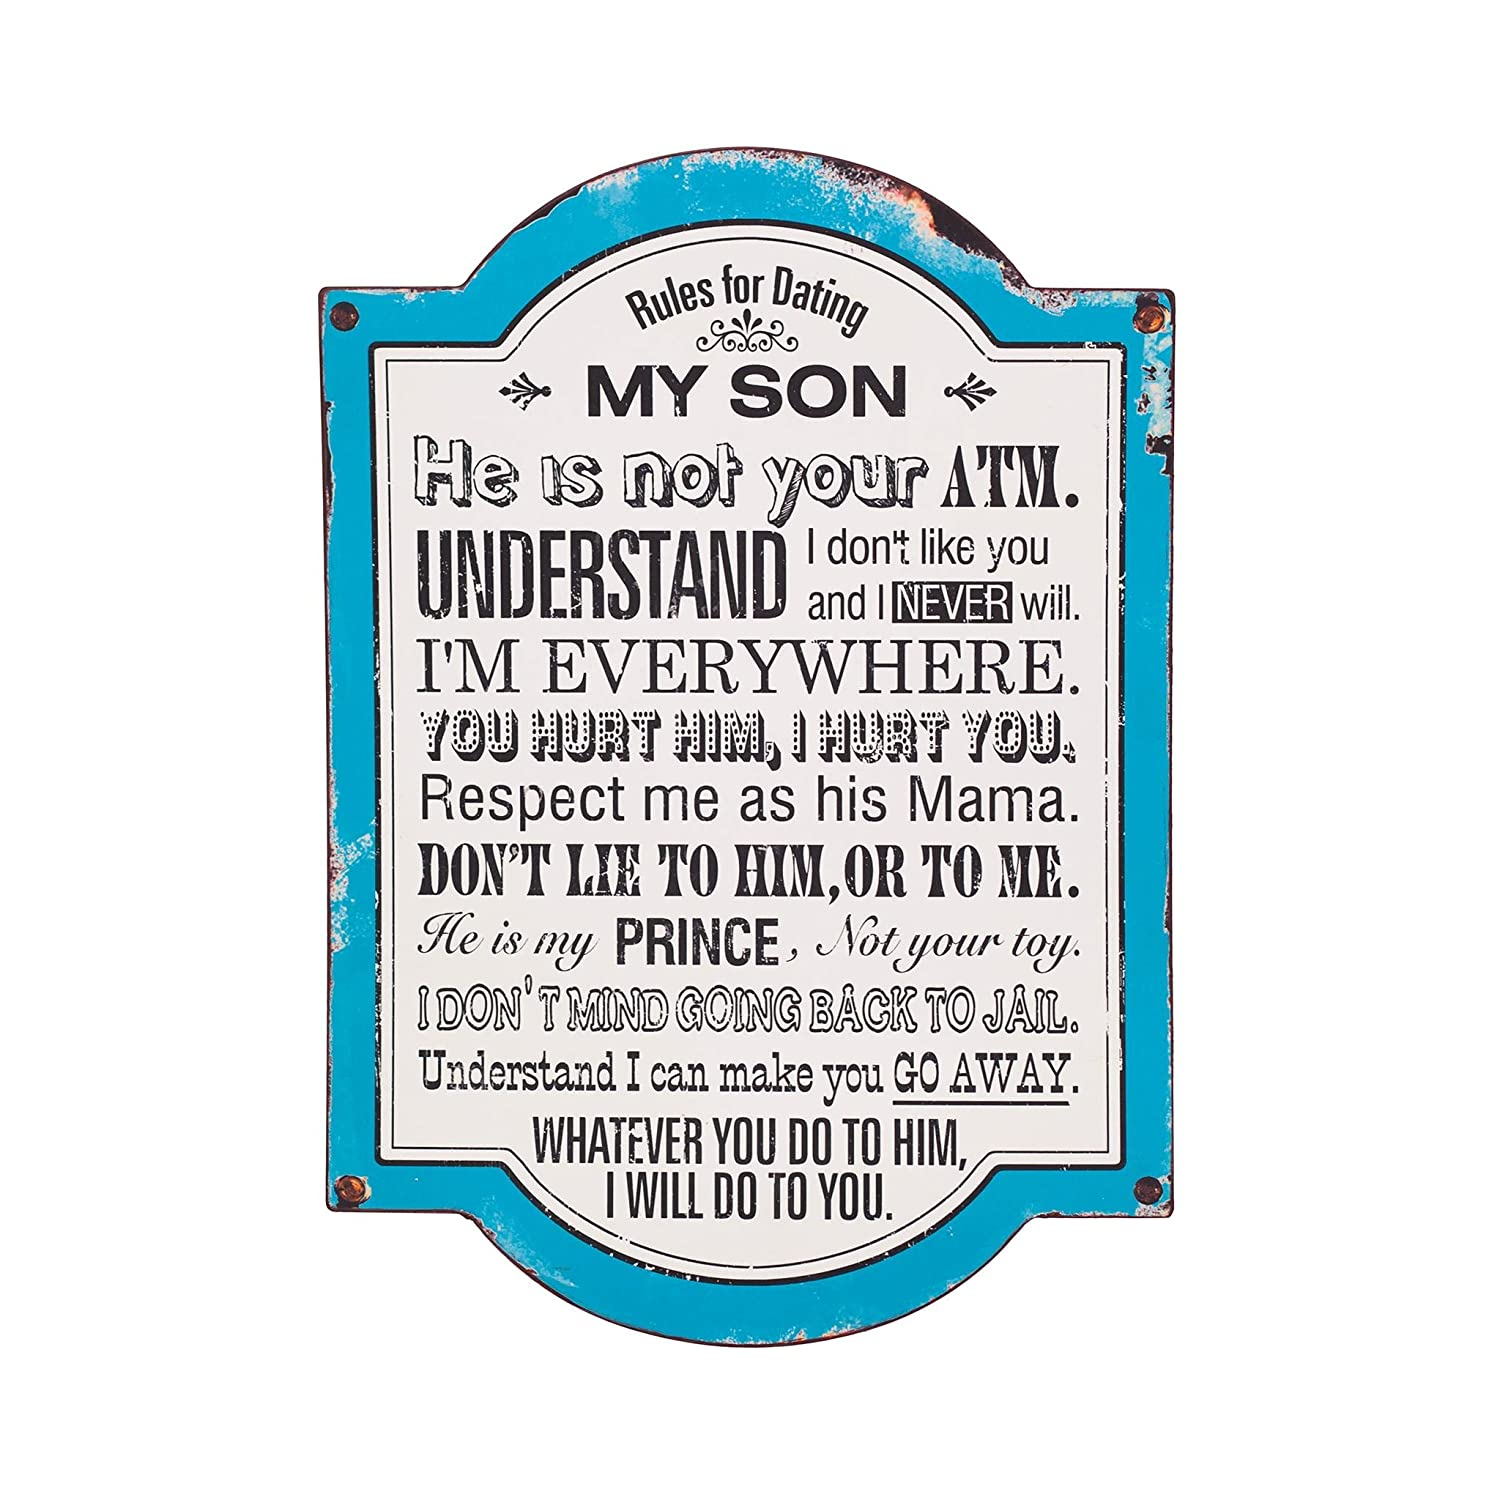 Dating my son